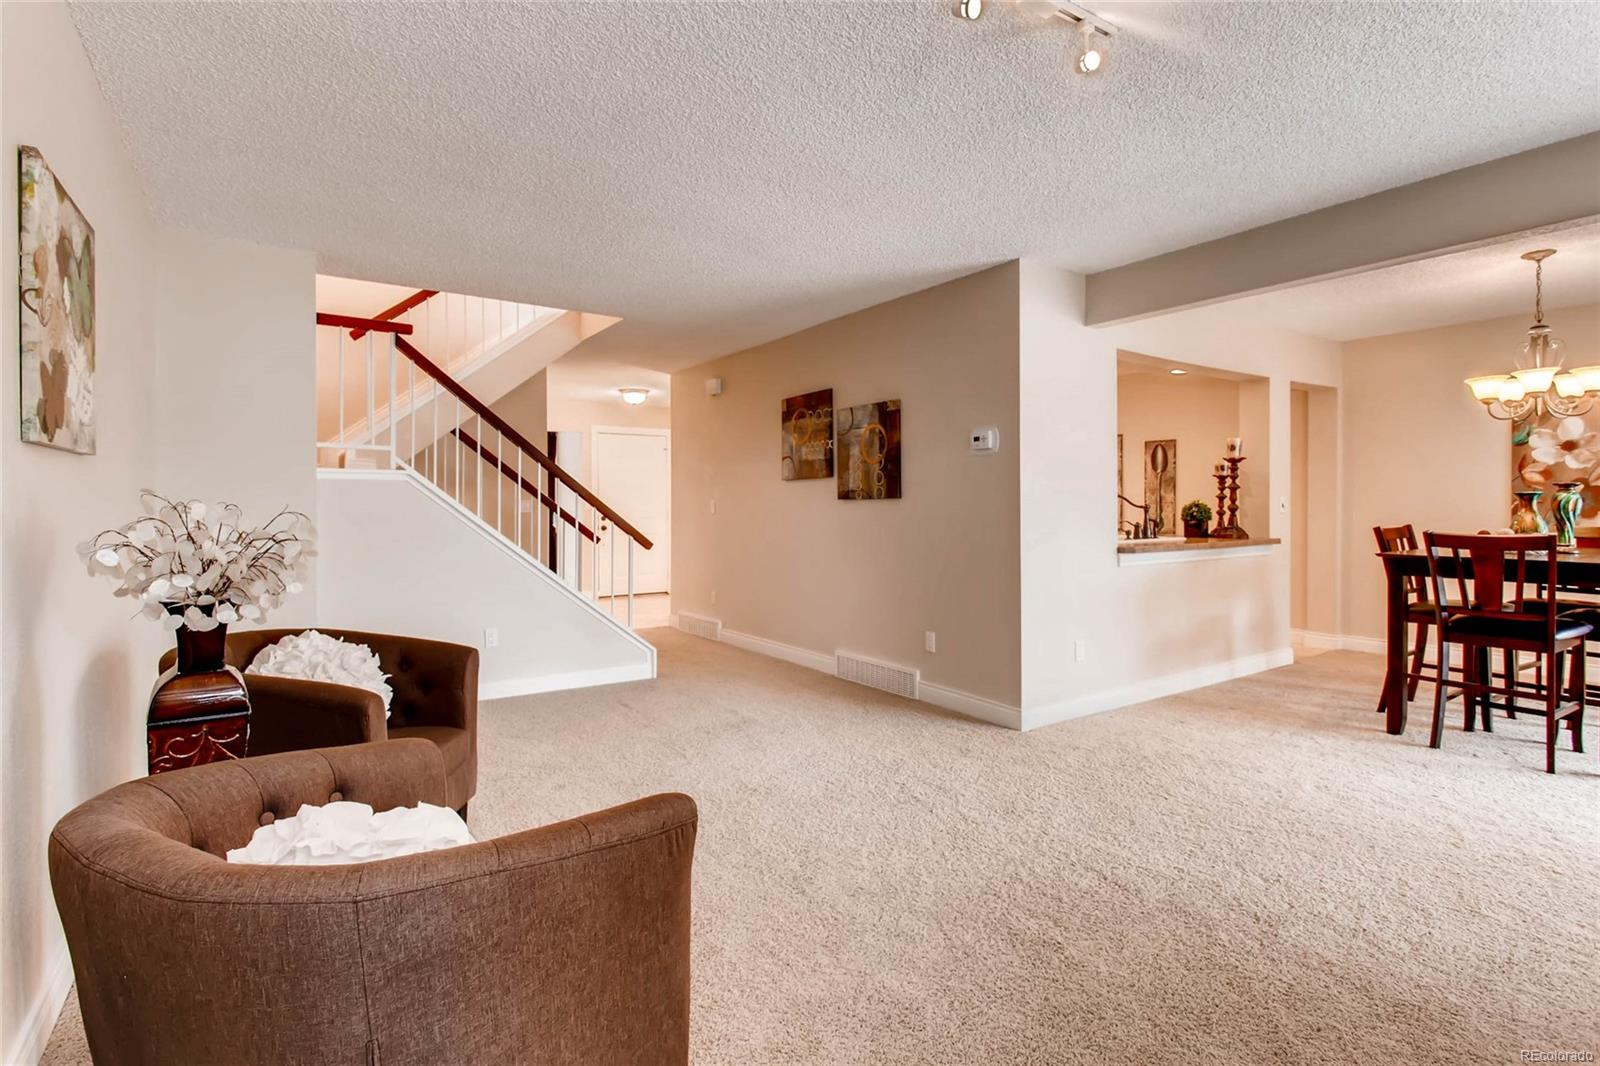 LIVING ROOM OVERLOOKING DINING ROOM, FOYER, AND STAIRS